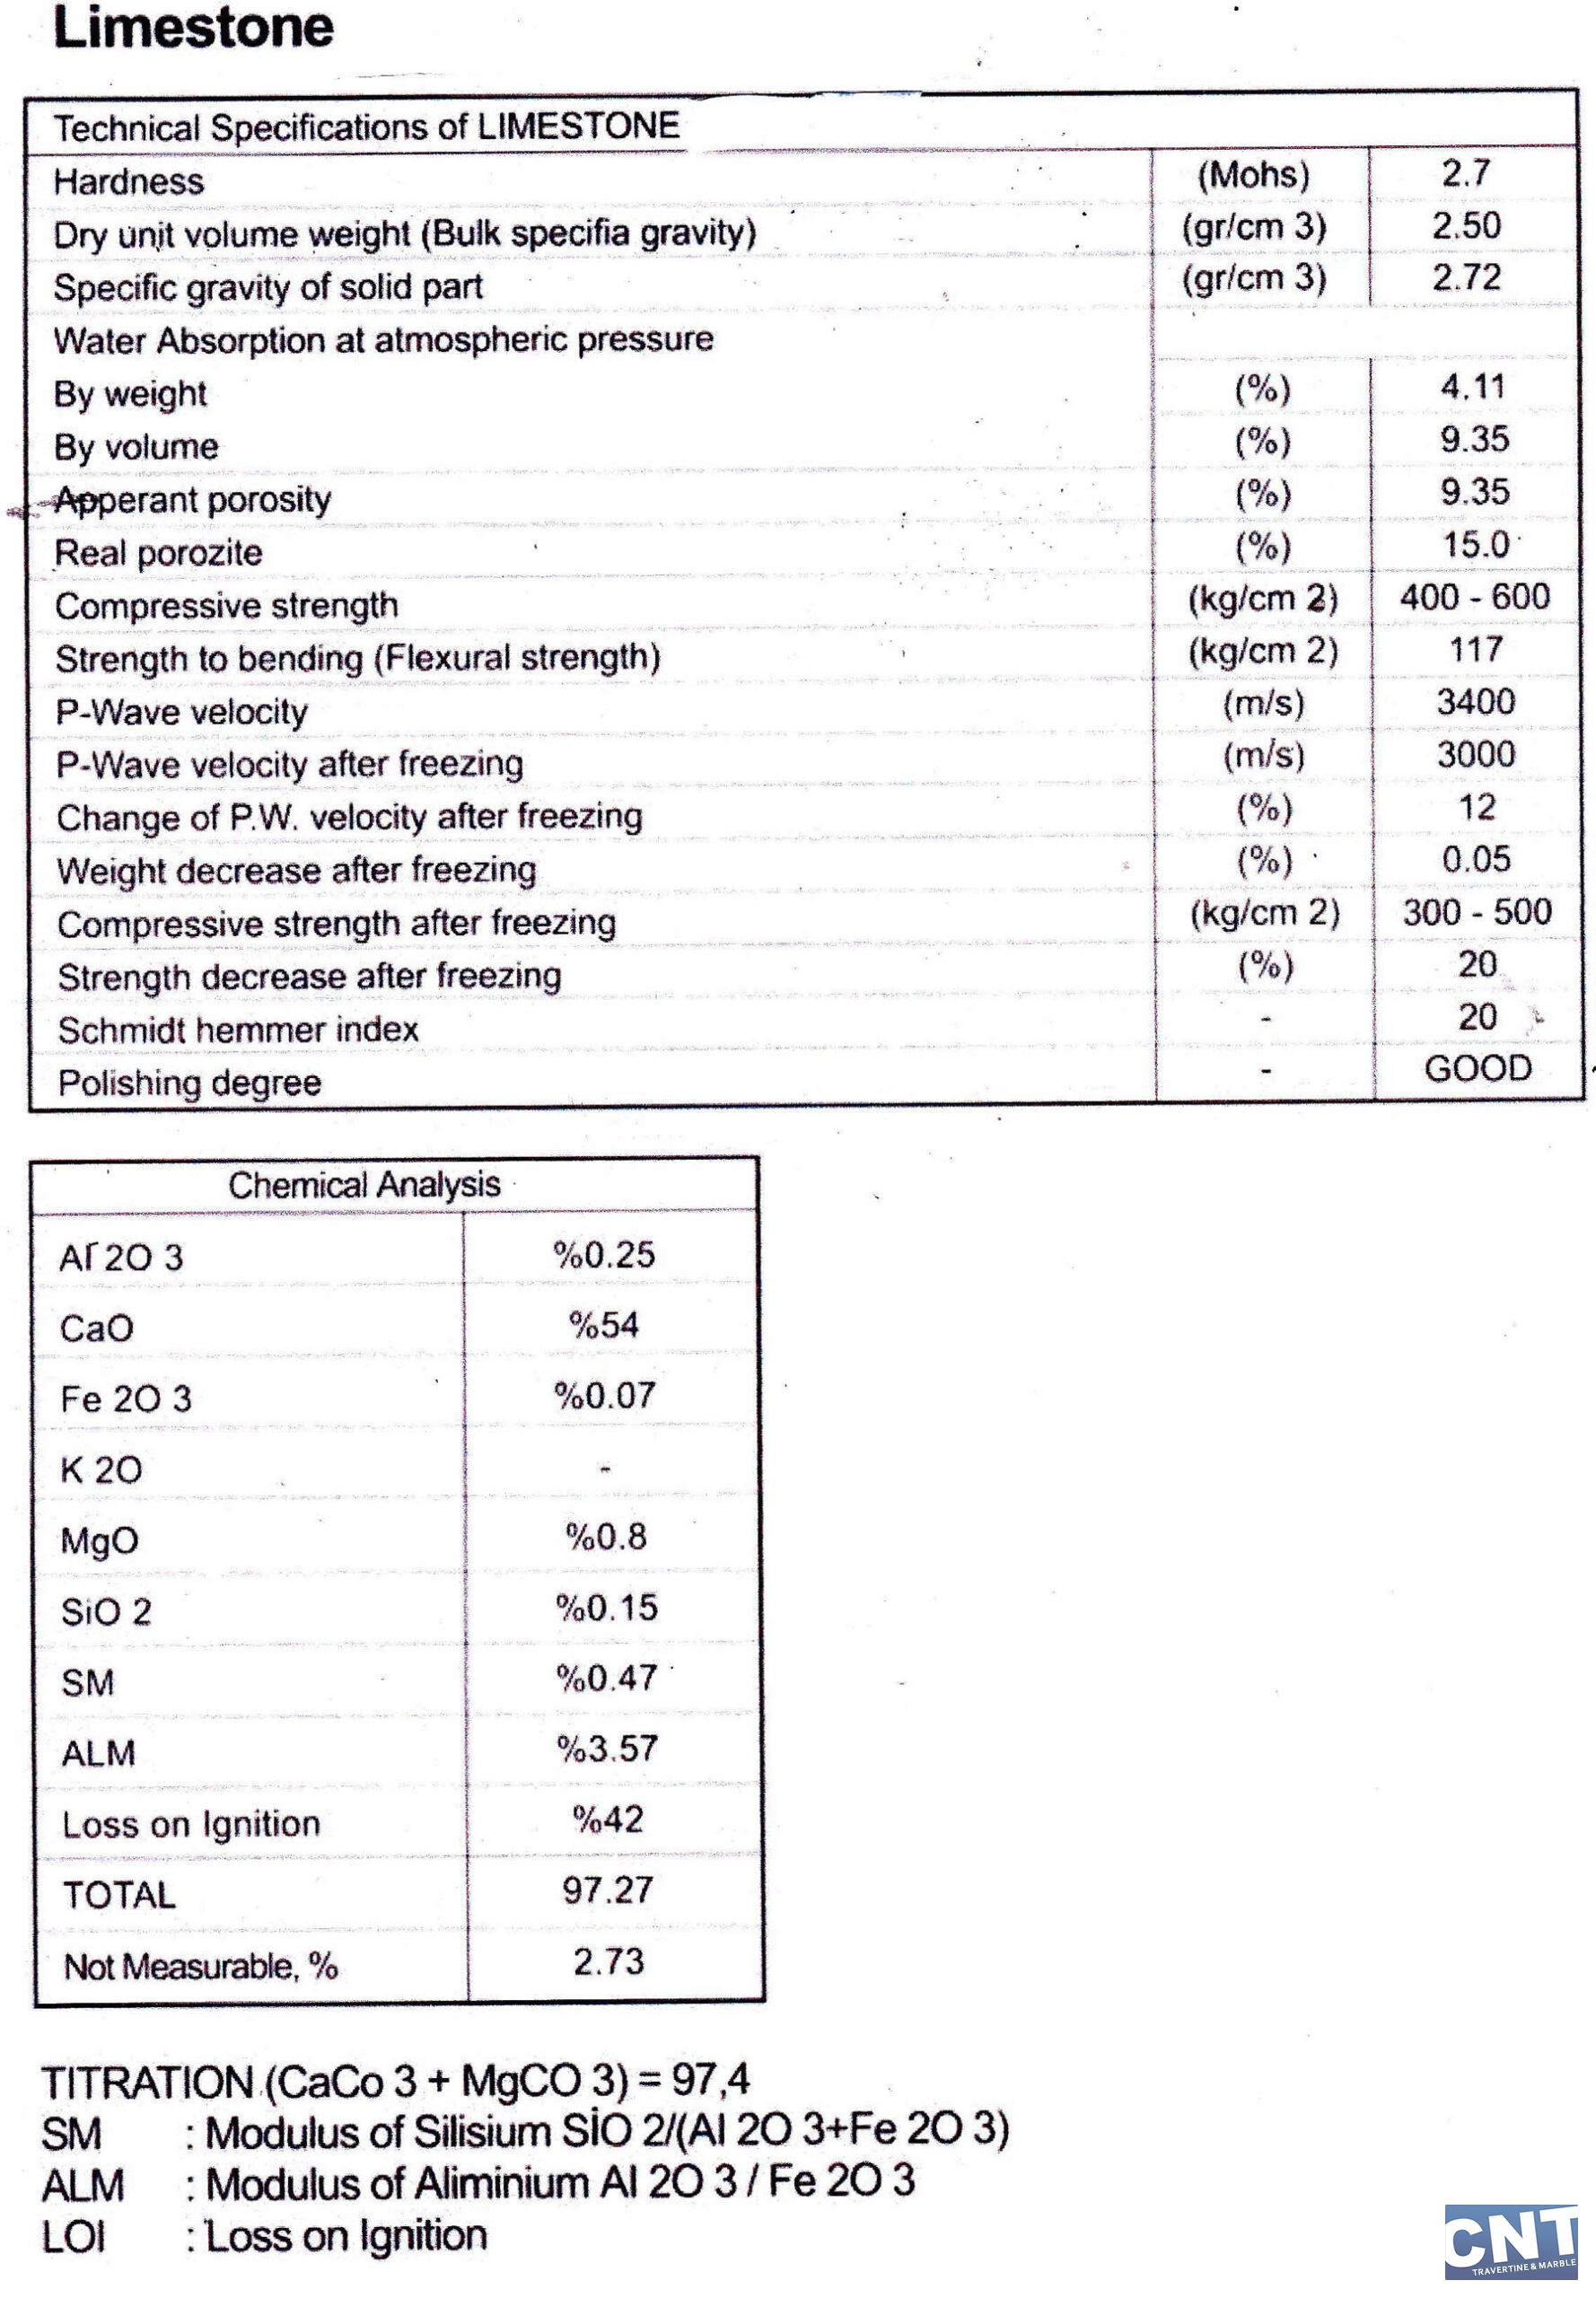 Technical Specifications White Limestone